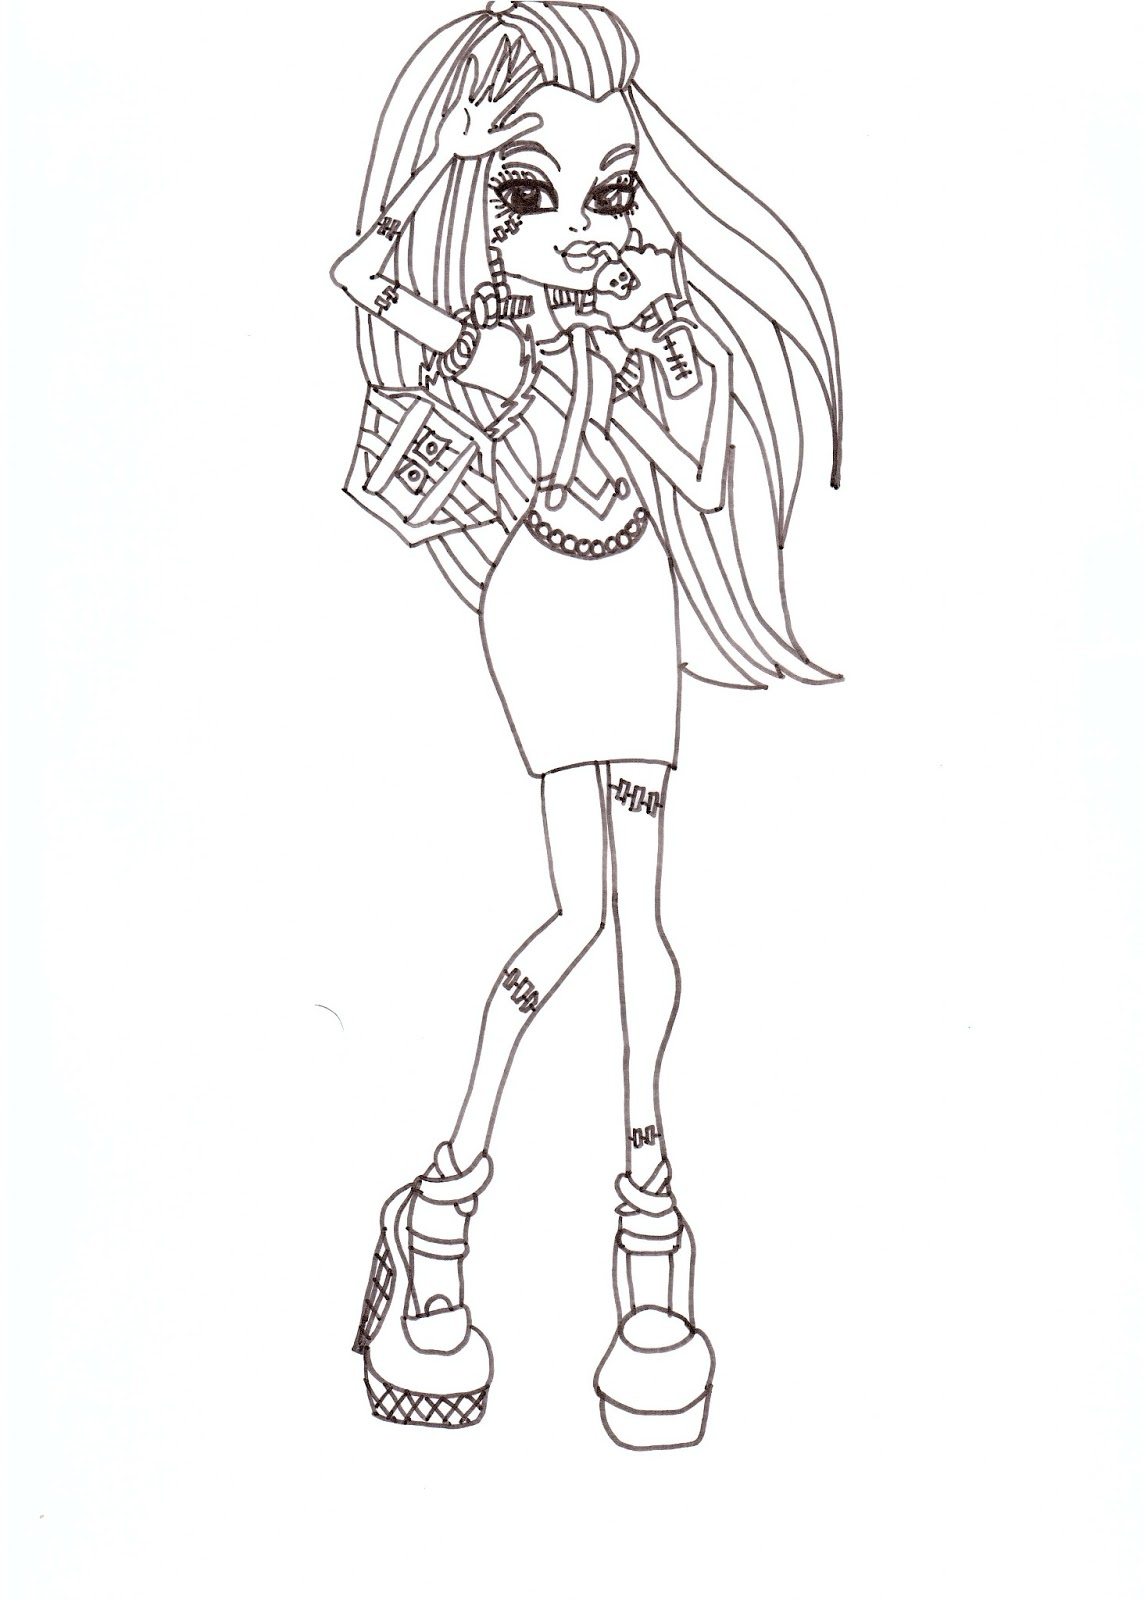 Free Printable Monster High Coloring Pages: Frankie